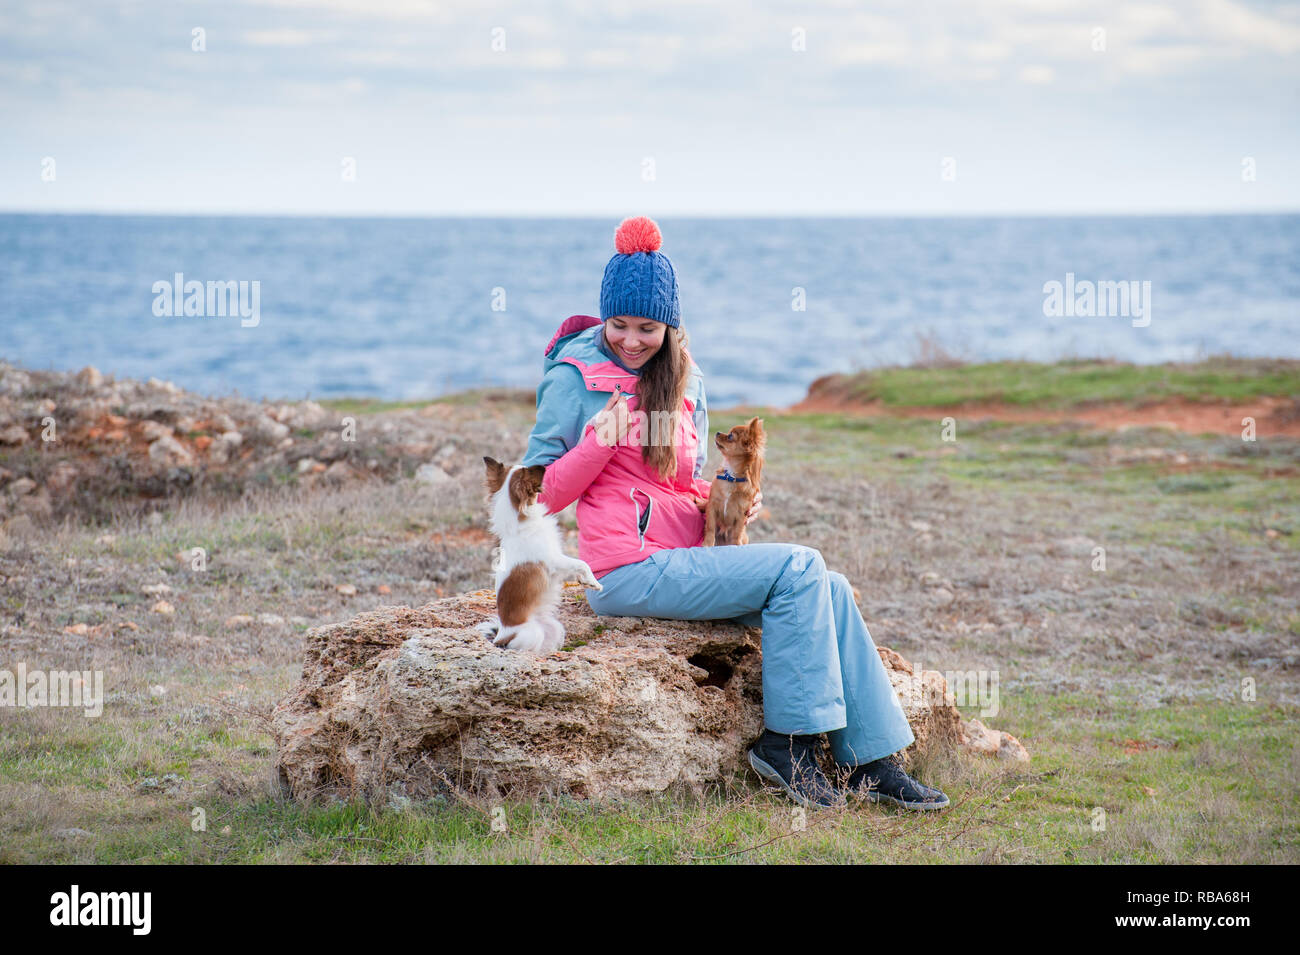 happy smiling beautiful girl in hat track suit sitting on stone with two dogs - Stock Image